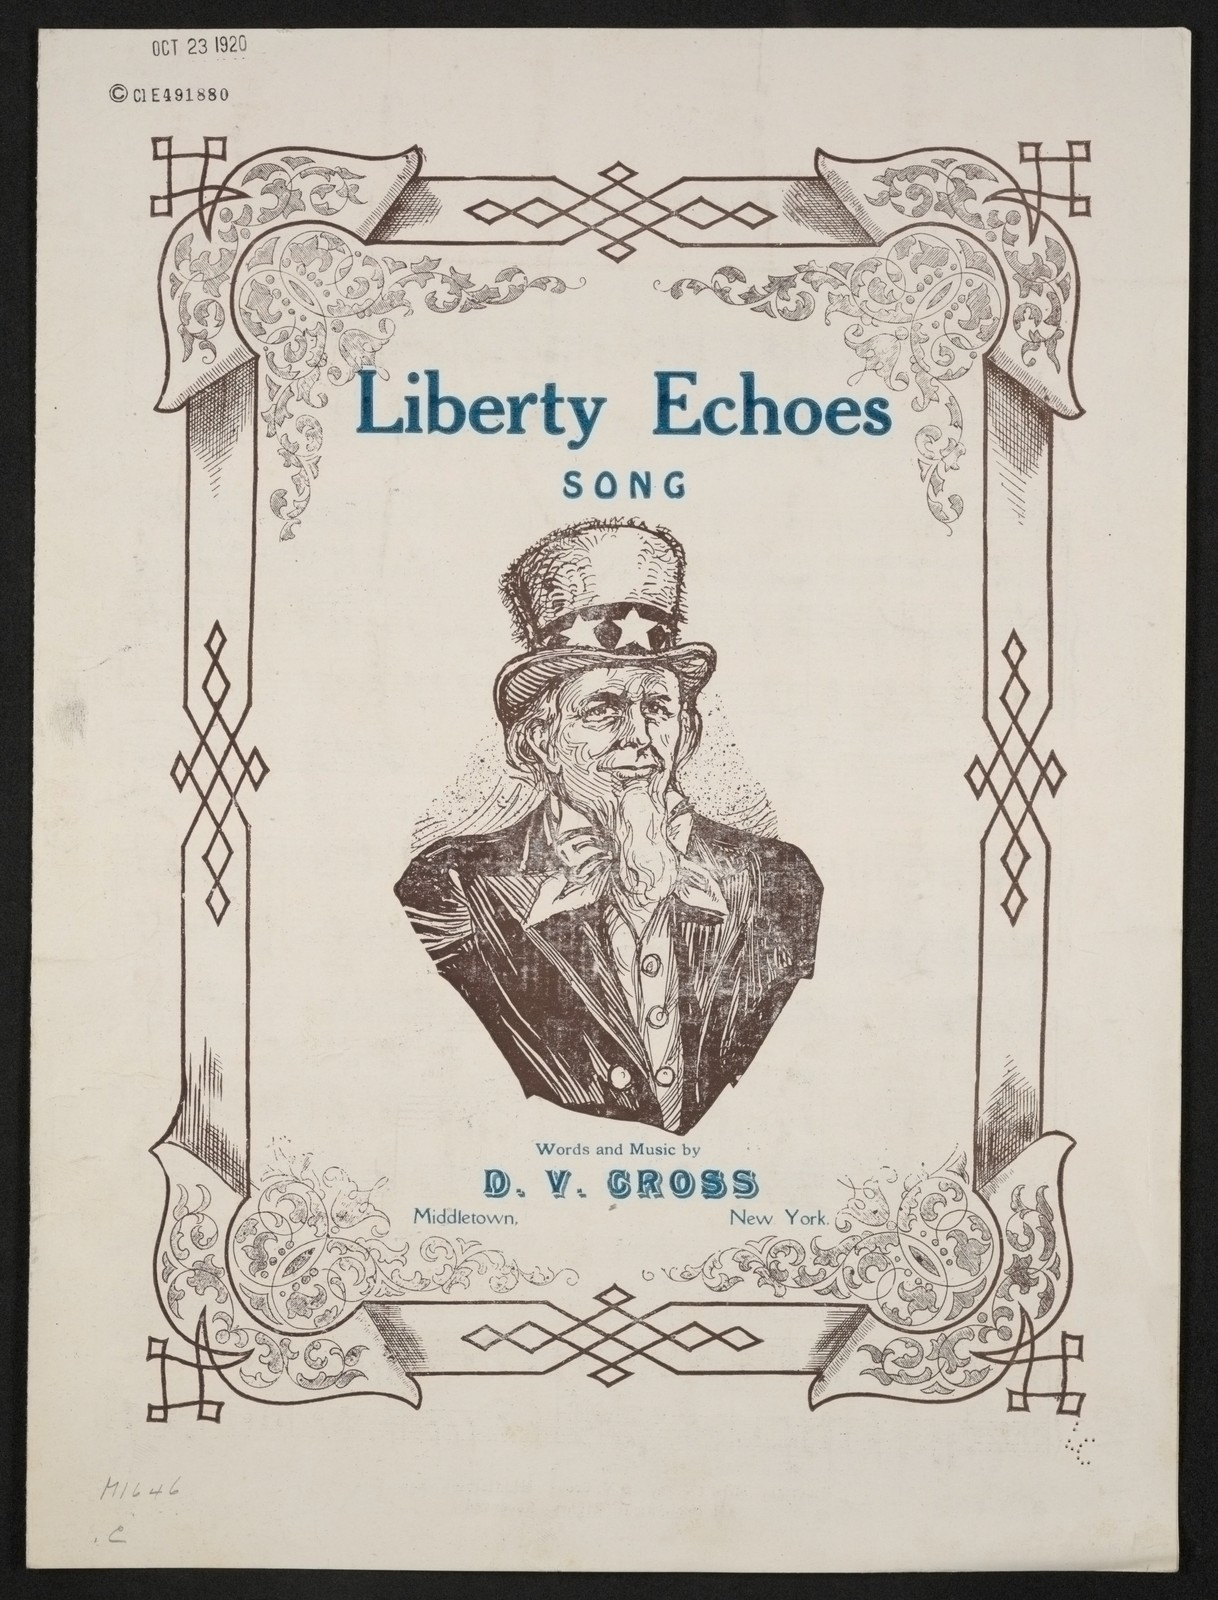 Liberty echoes song